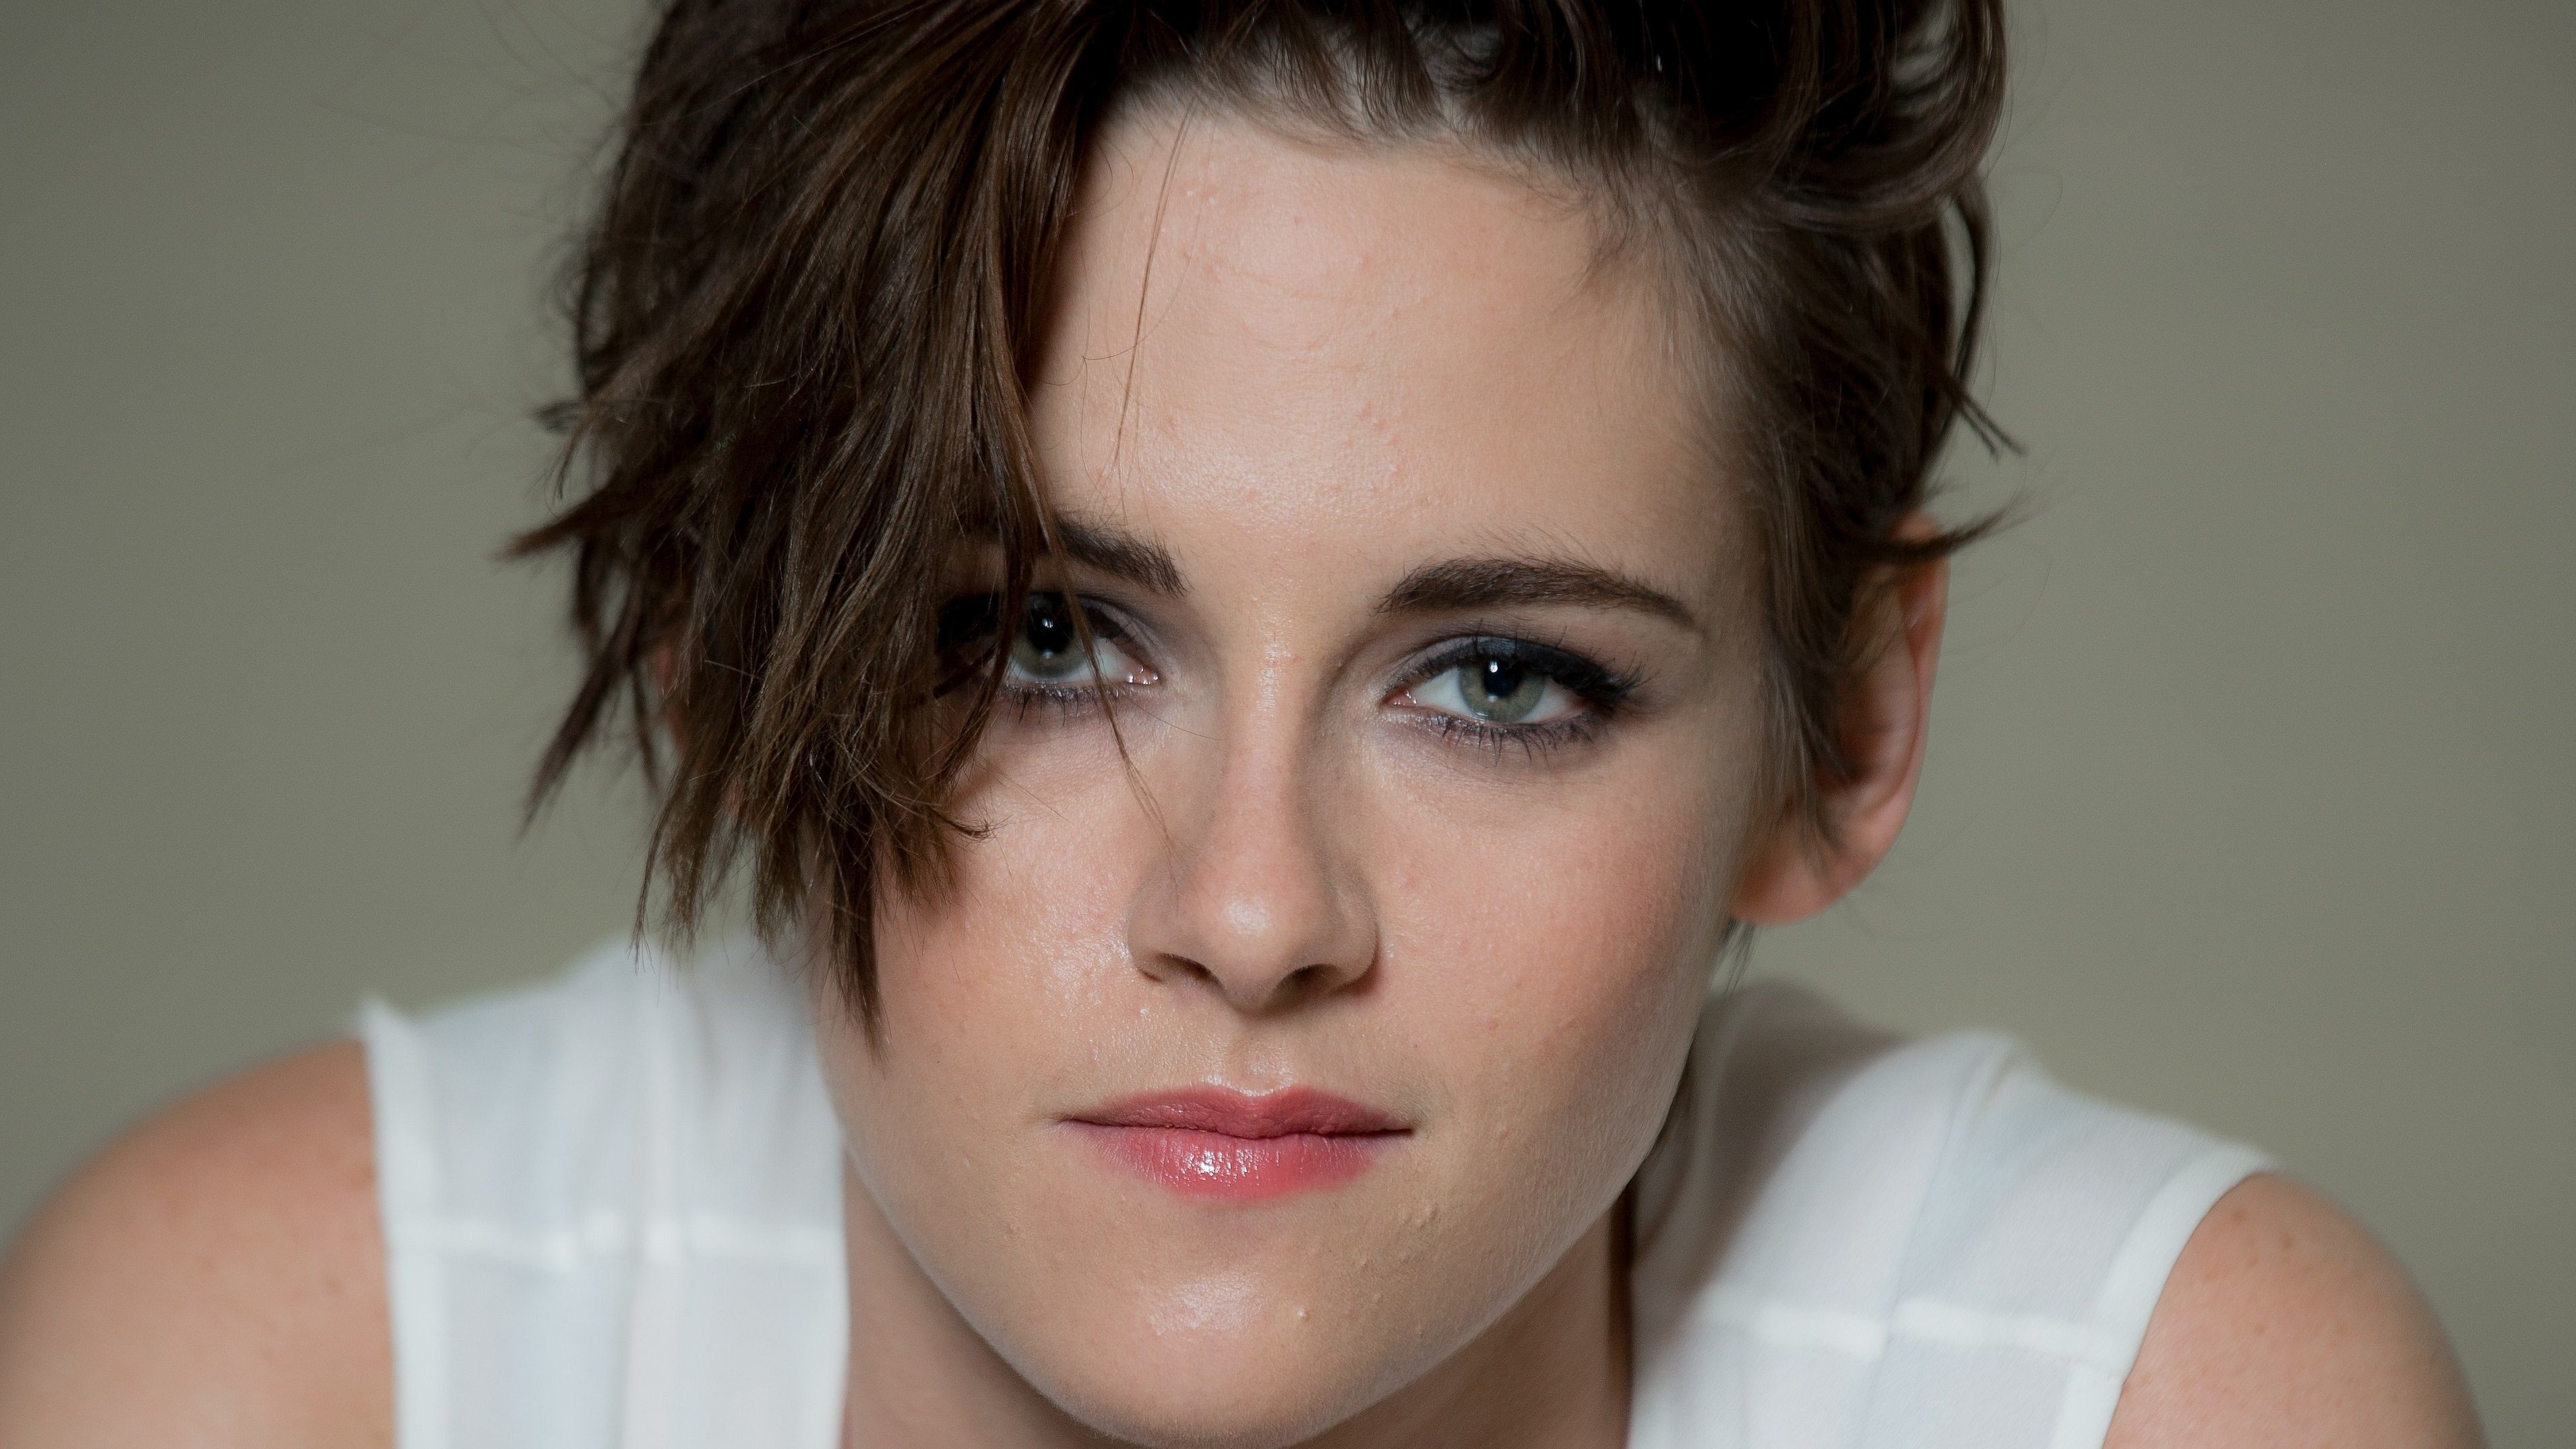 Res: 3822x2150, Kristen Stewart Hot Photo Kristen Stewart HD Wallpaper